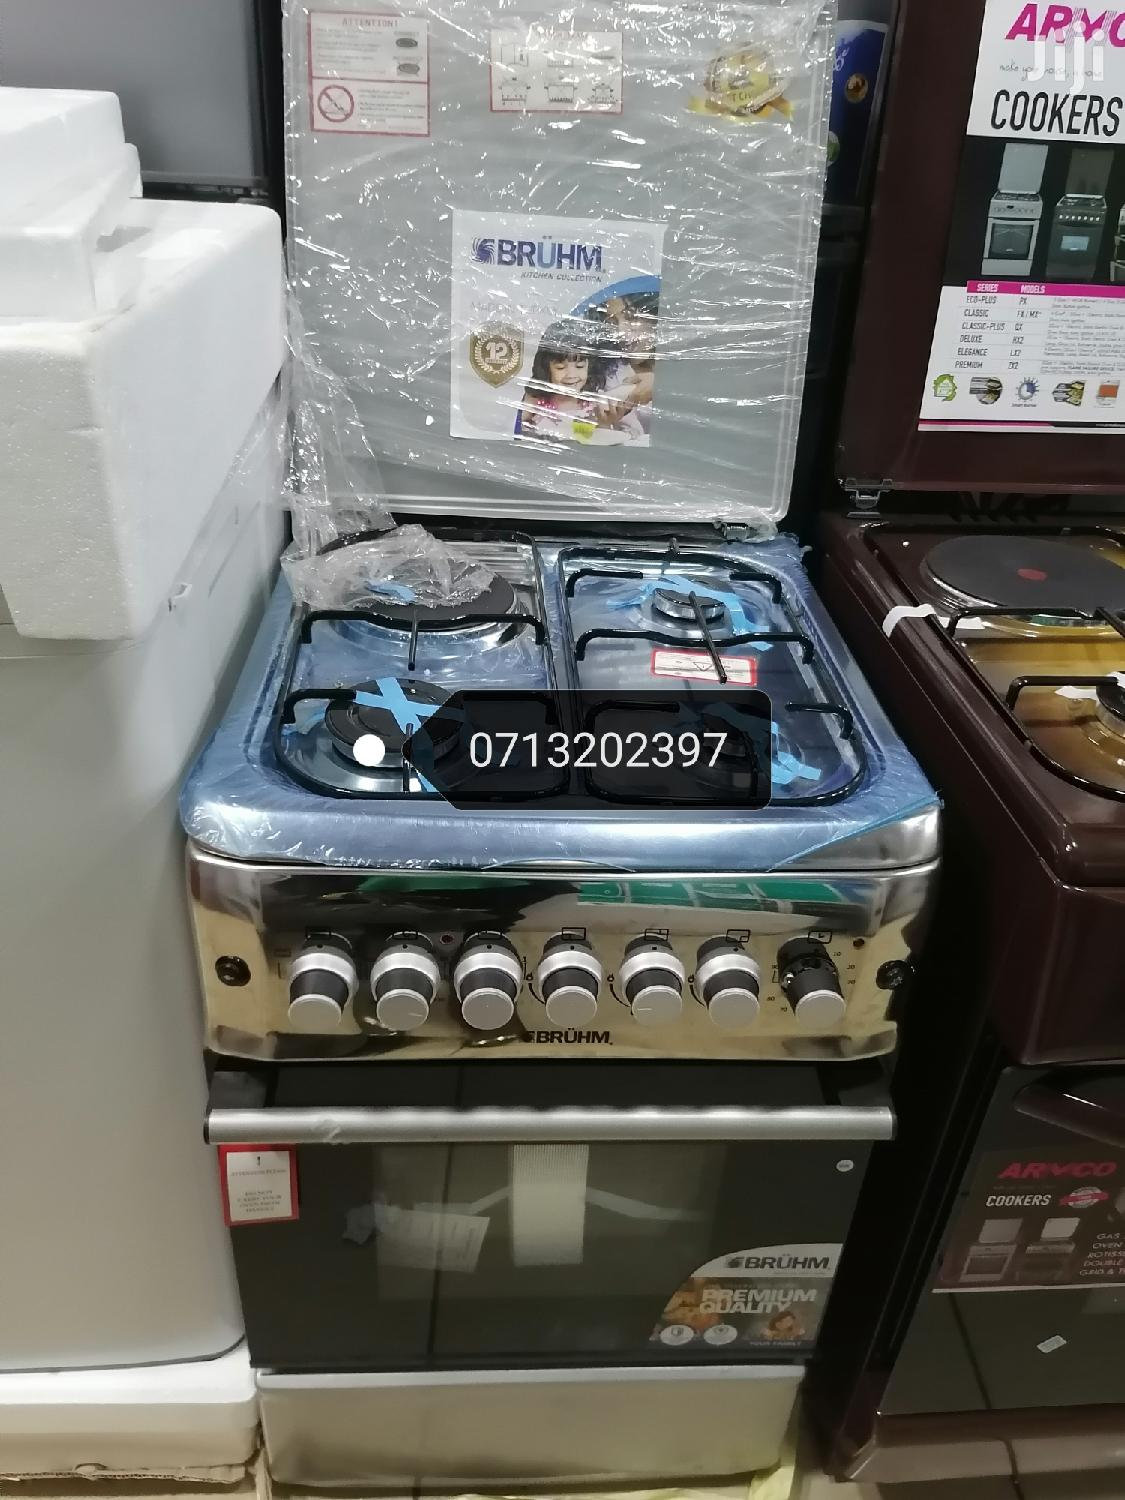 Brand New Bruhm 3gas and 1 Electric Cooker